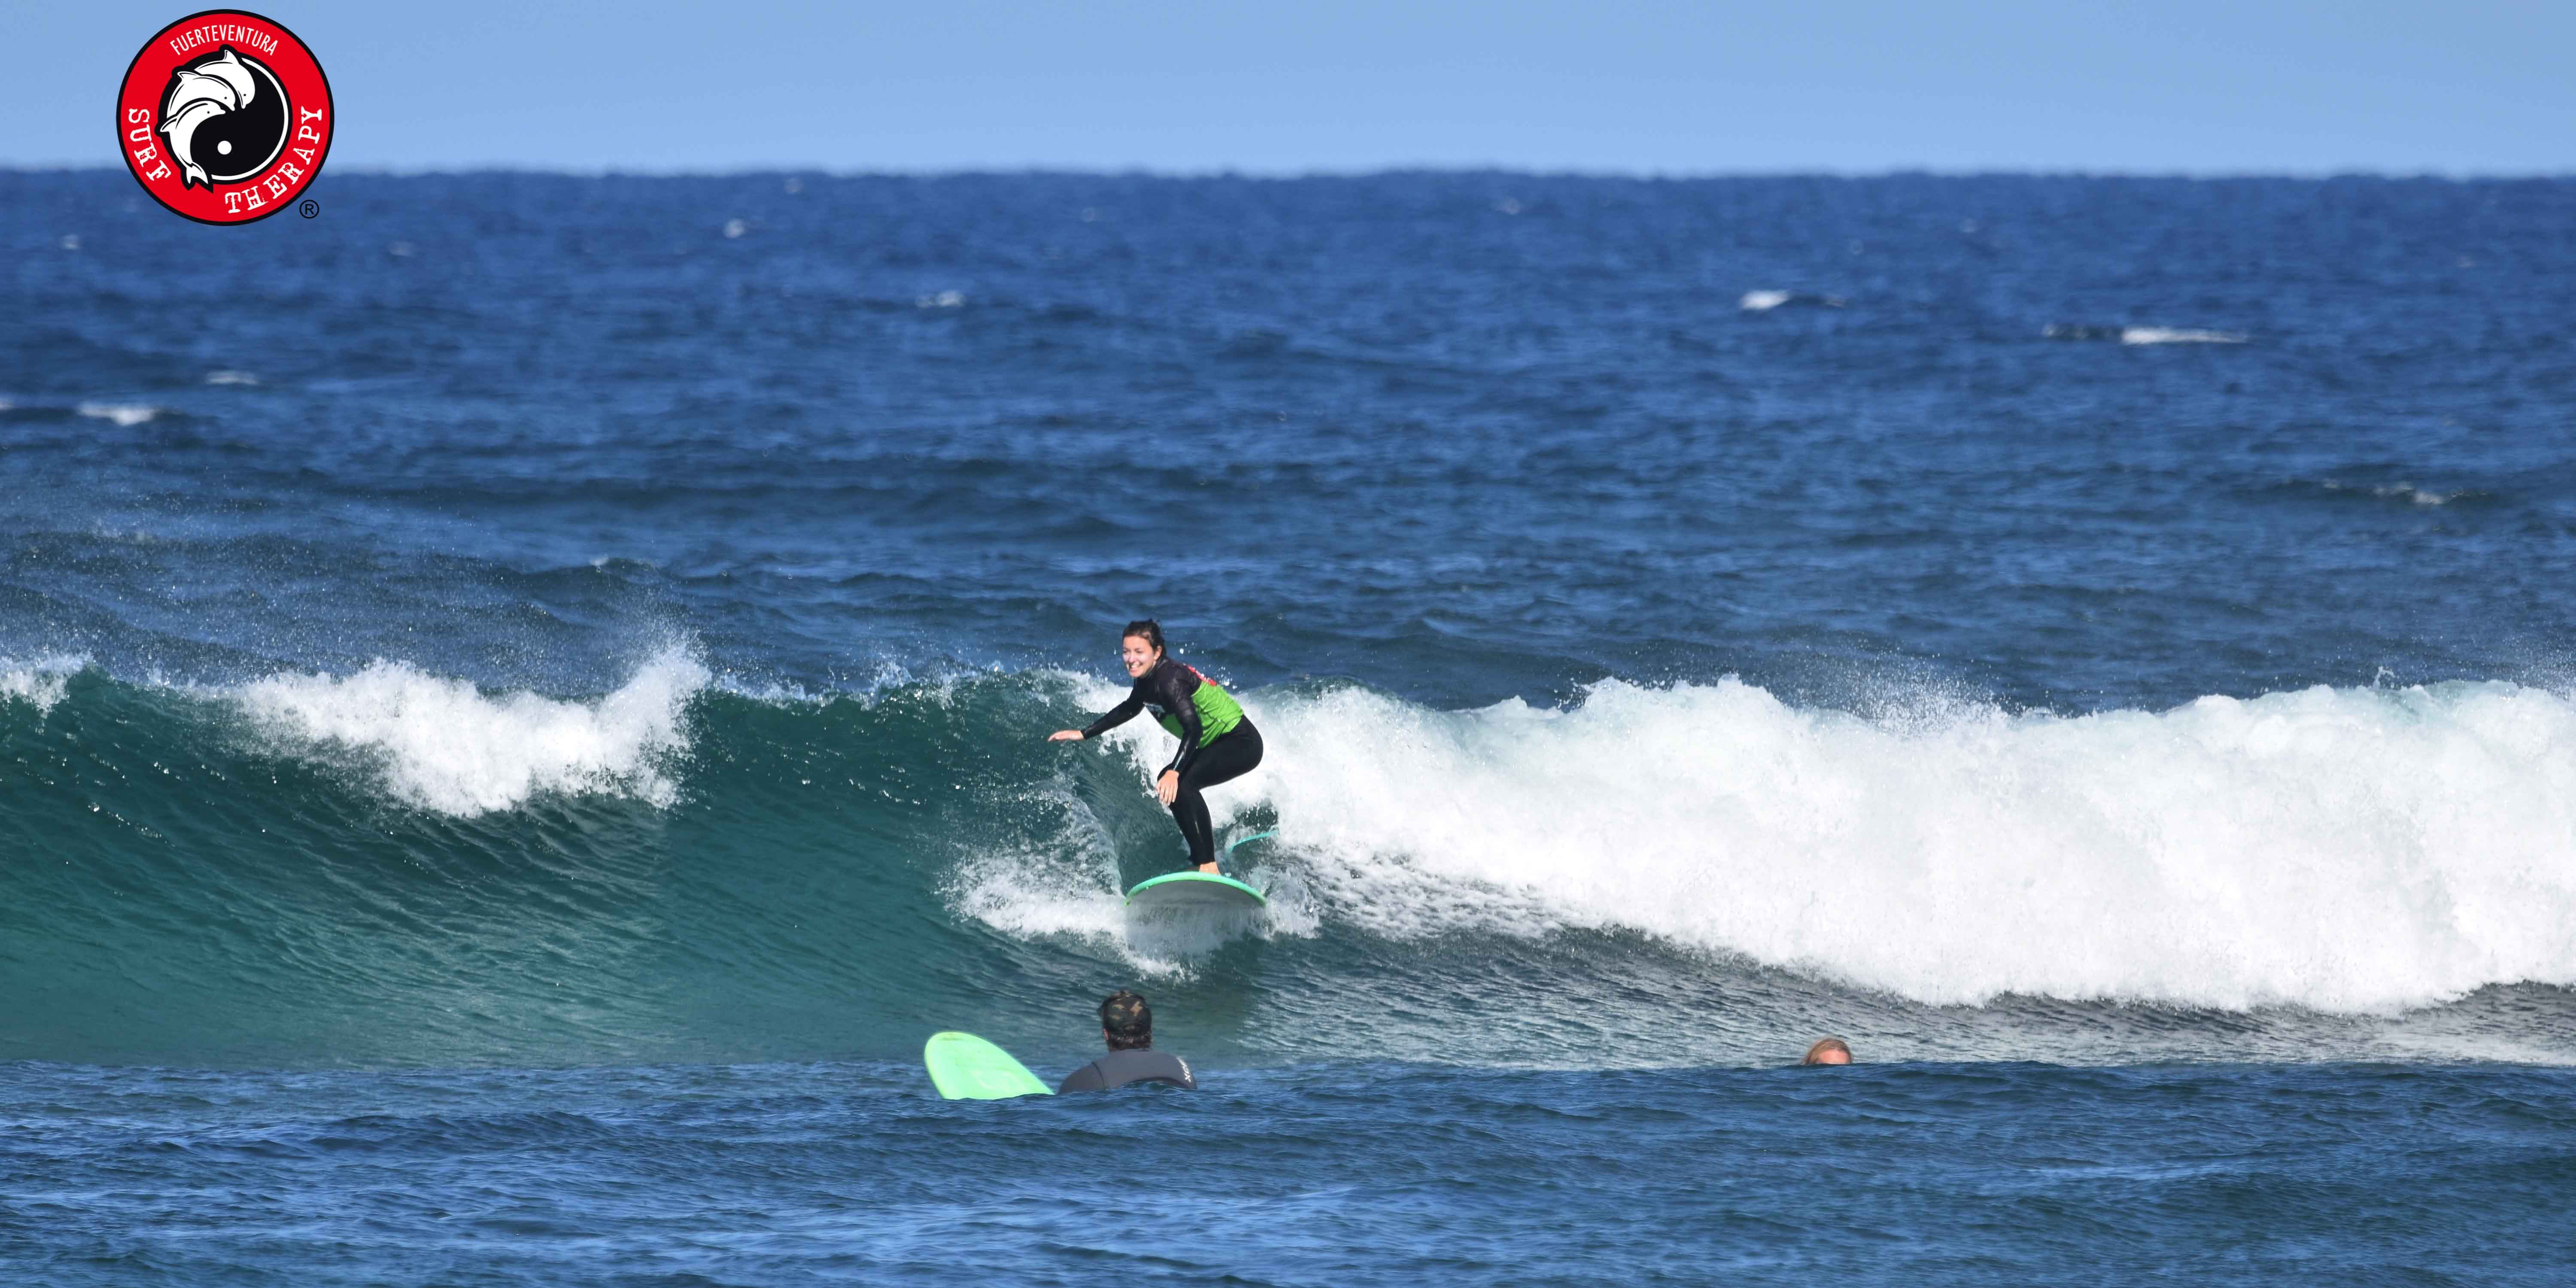 10% discount on Fuerteventura Surf Camp and surf courses